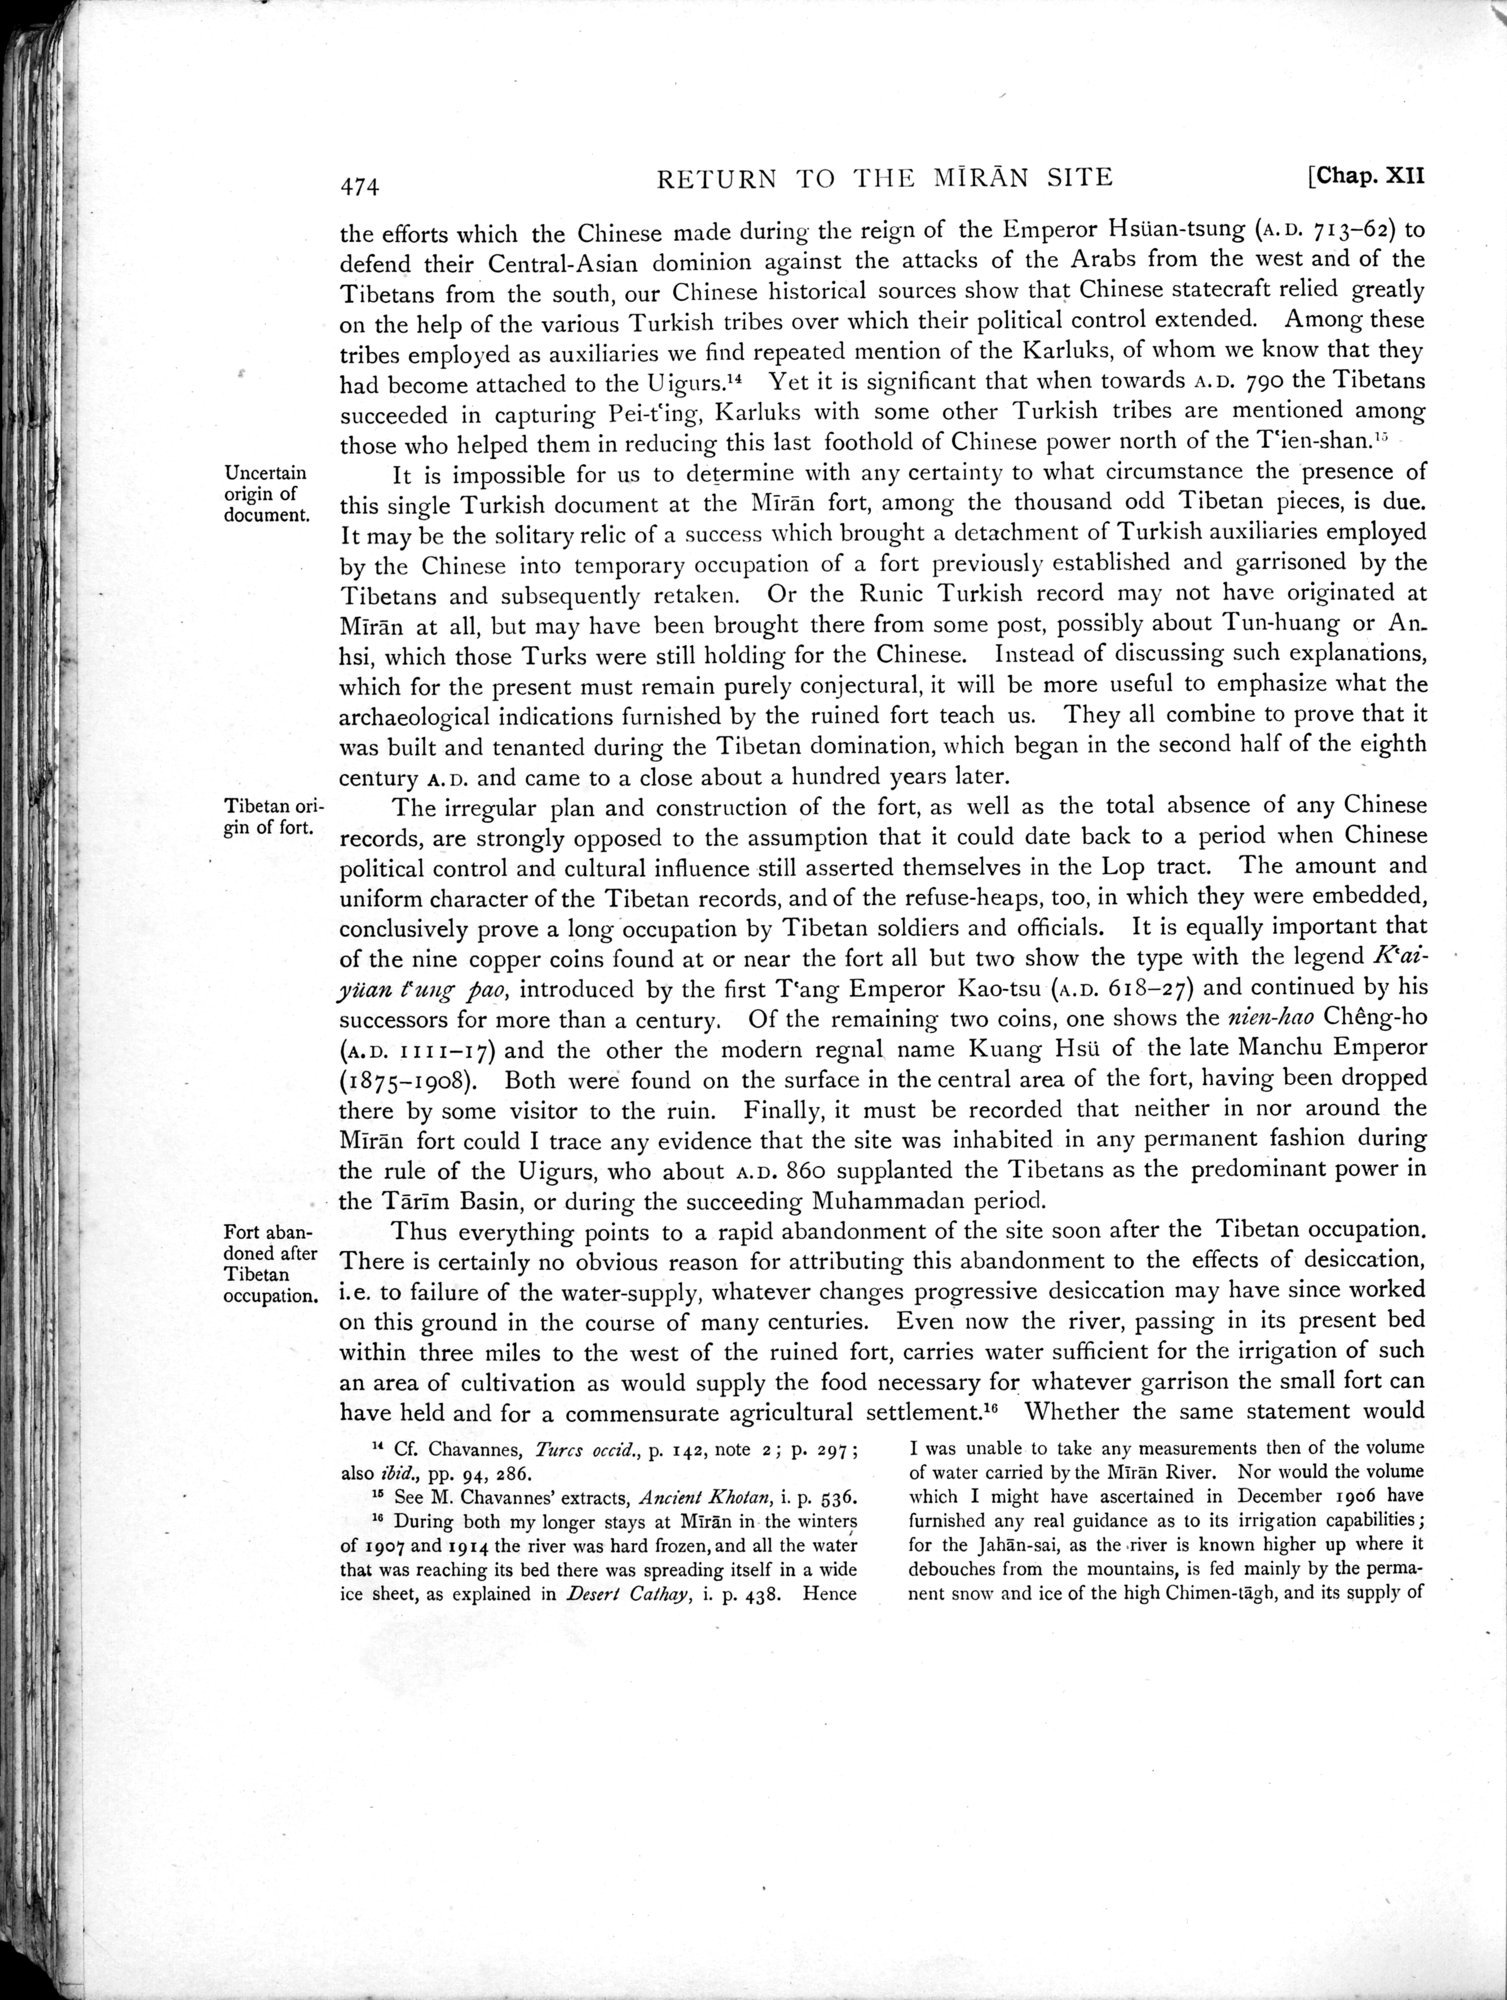 Serindia : vol.1 / Page 558 (Grayscale High Resolution Image)